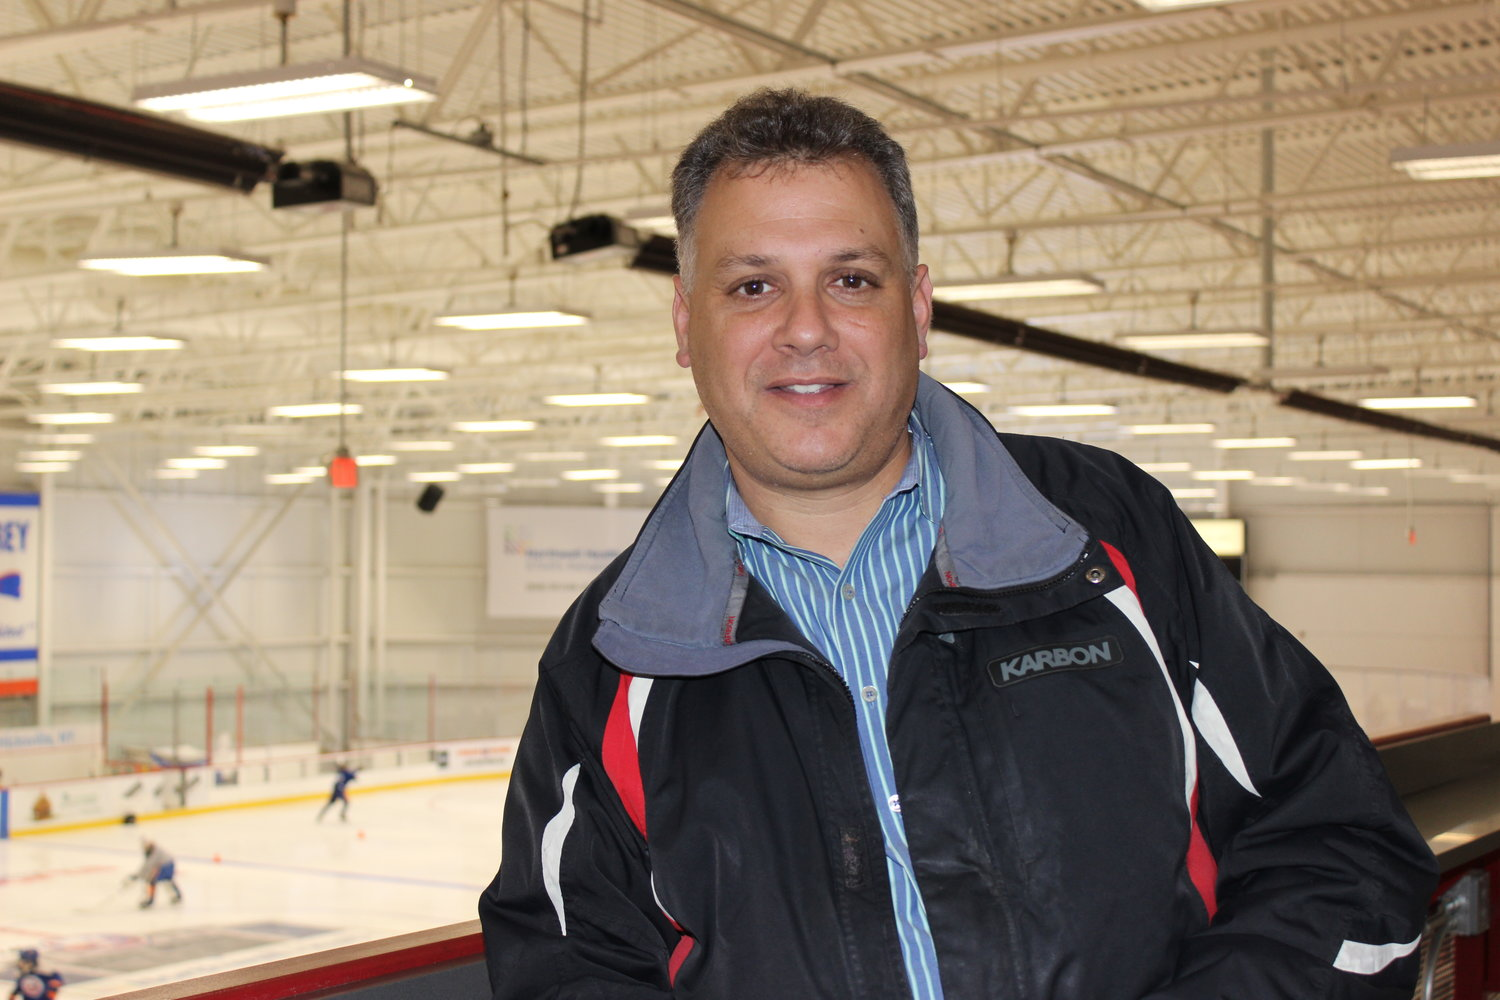 Thomas Columbia, an NHL off-ice official and East Meadow father, is seeking to start an East Meadow hockey team for sixth to twelfth-grade students.